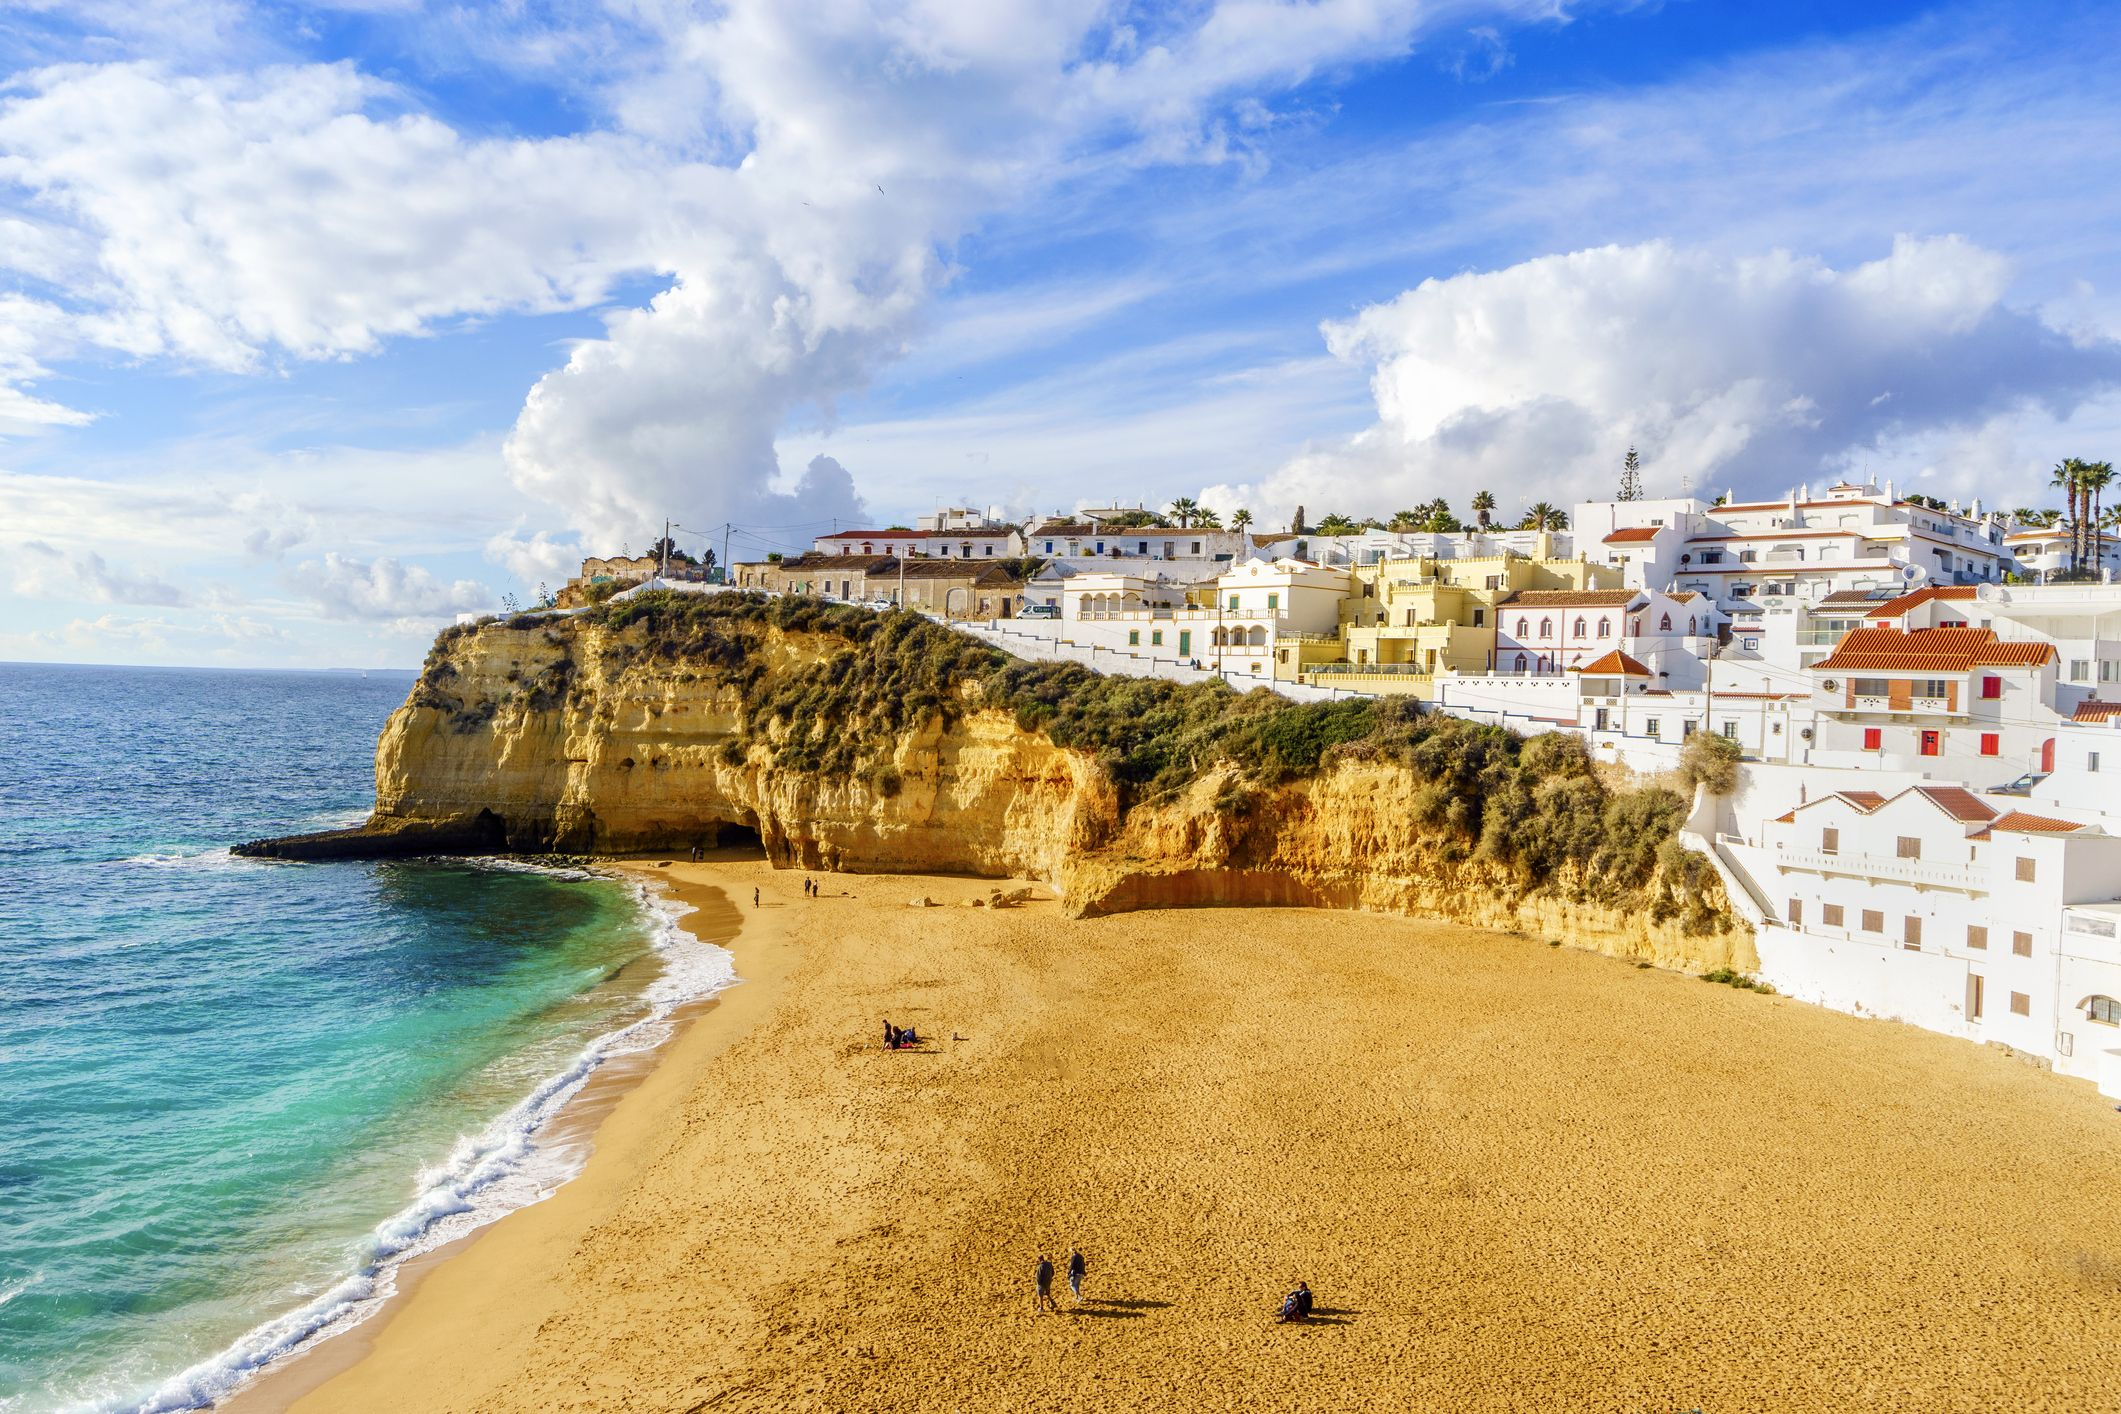 Sandy beach between cliffs and white architecture in Carvoeiro, Algarve, Portugal